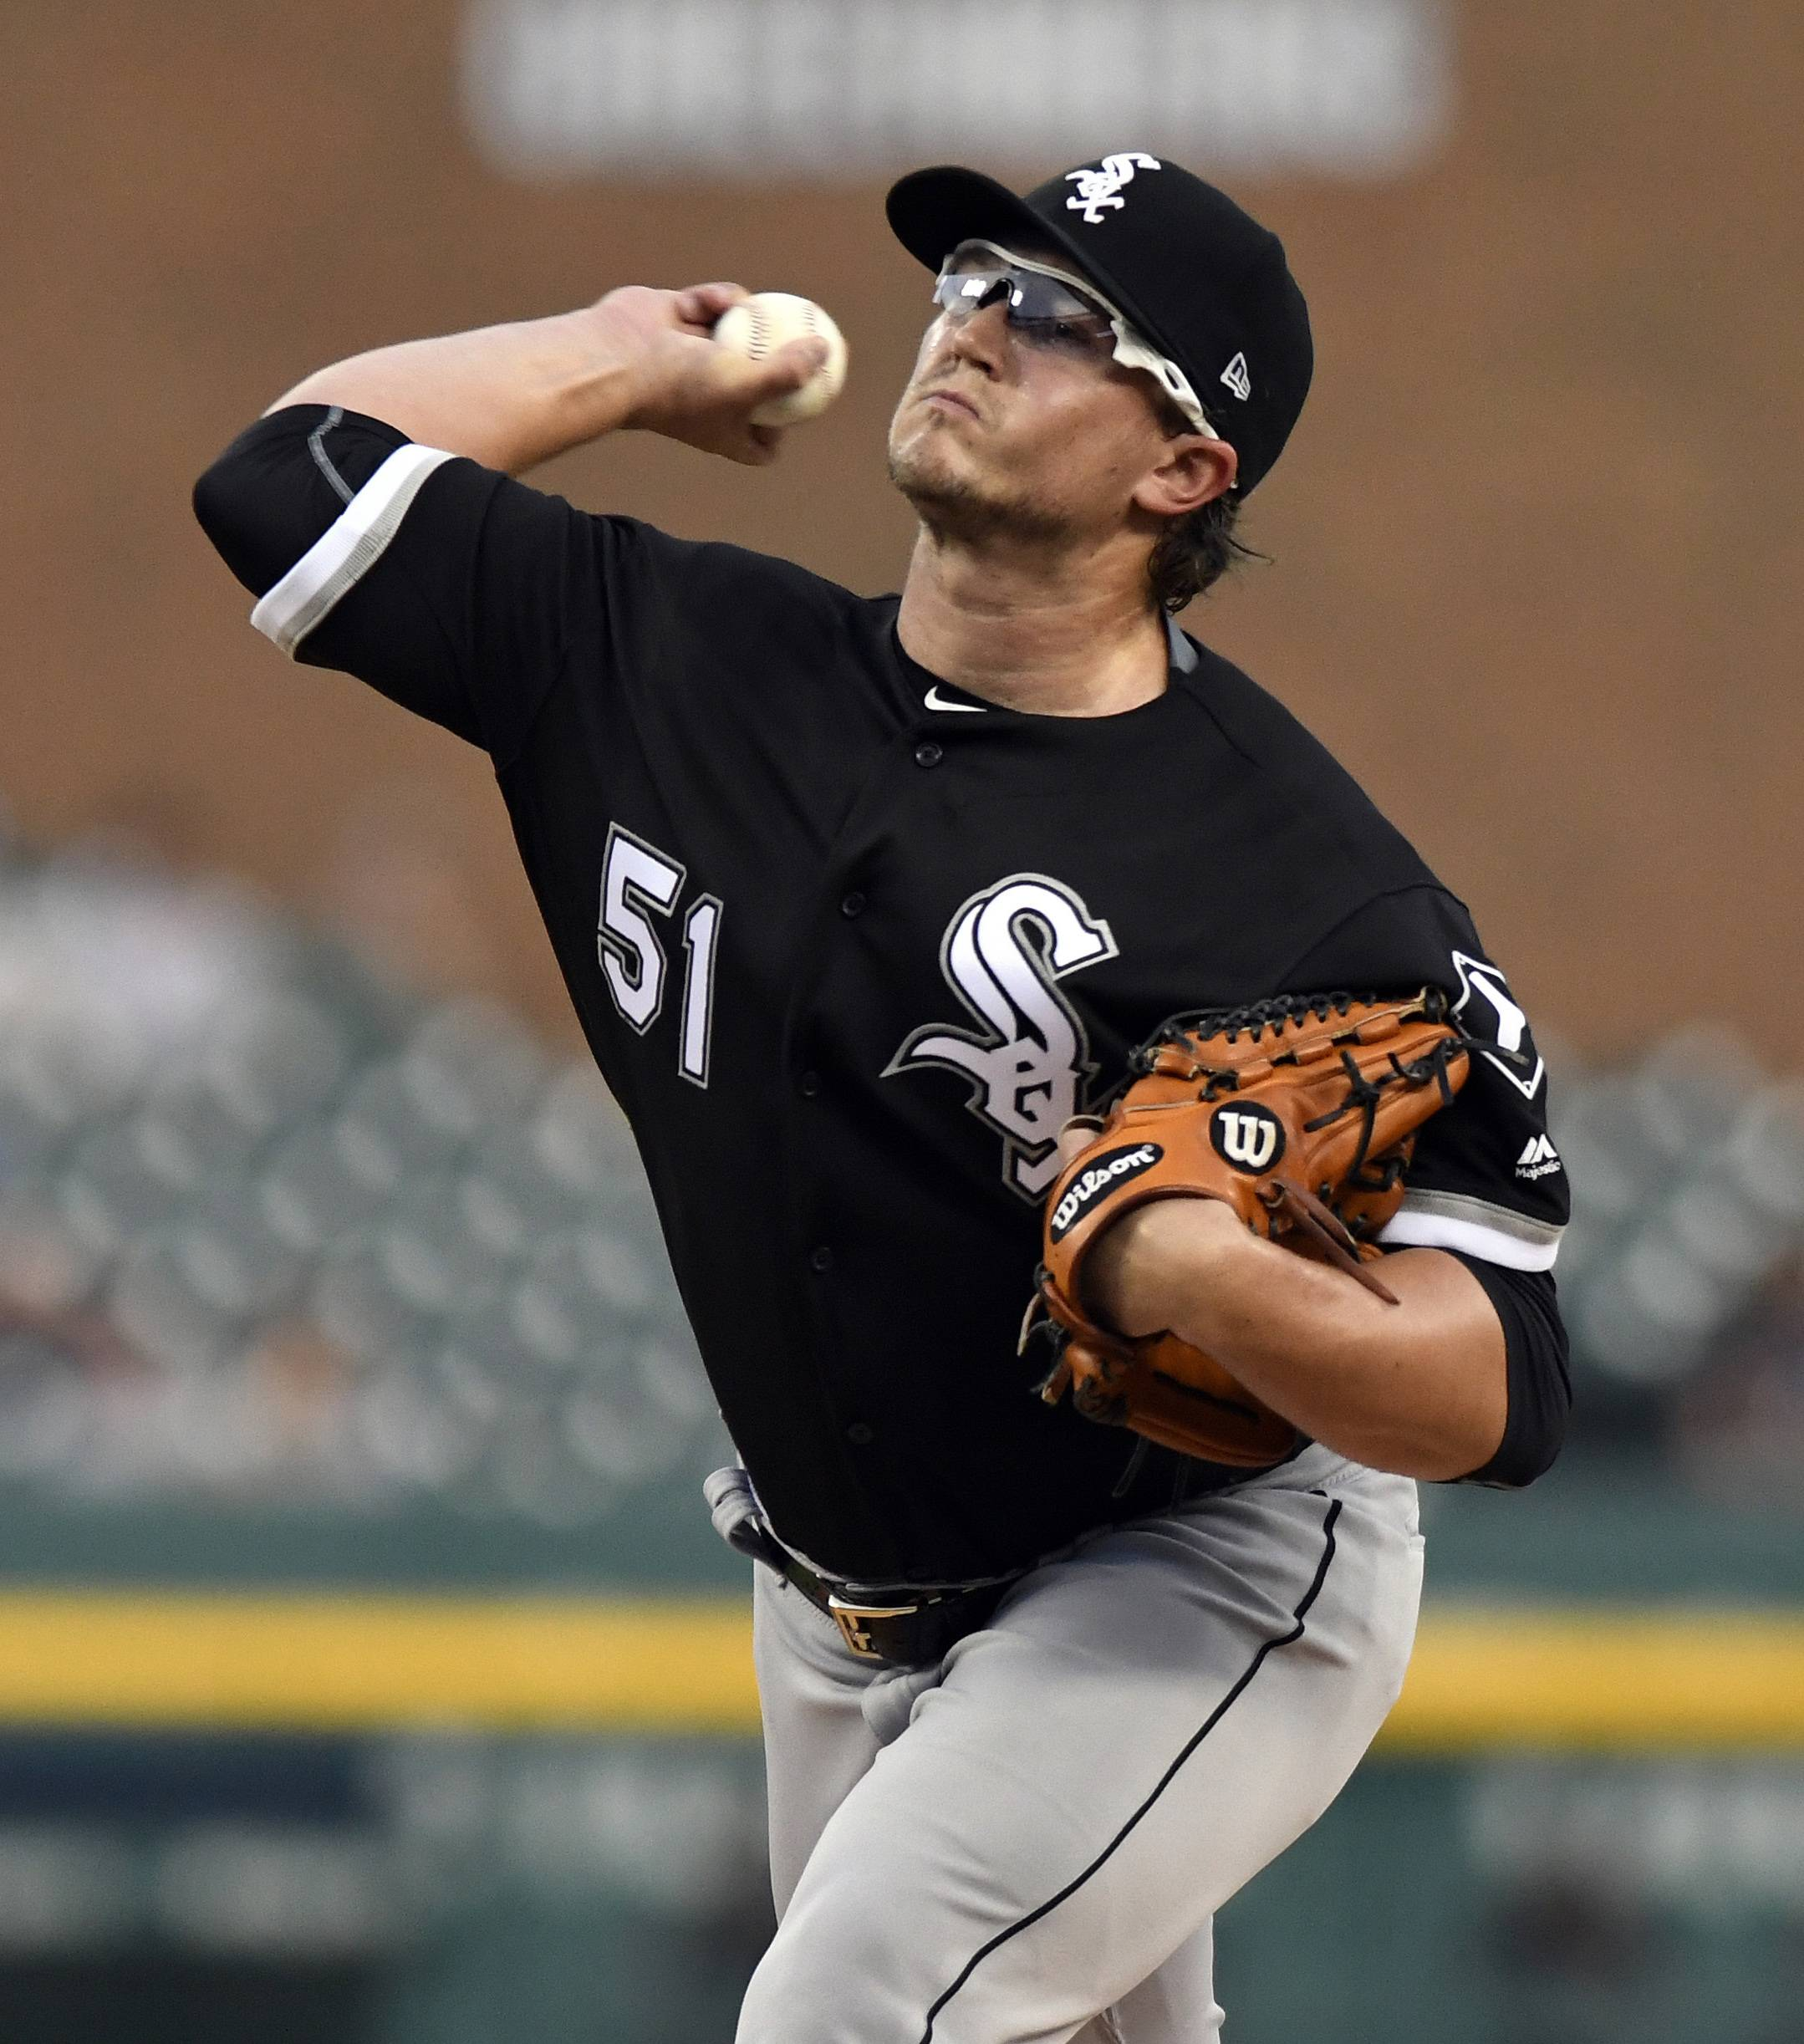 Chicago White Sox starting pitcher Carson Fulmer delivers against the Detroit Tigers during the first inning of a baseball game, Friday, Sept. 15, 2017, in Detroit. (AP Photo/Jose Juarez)